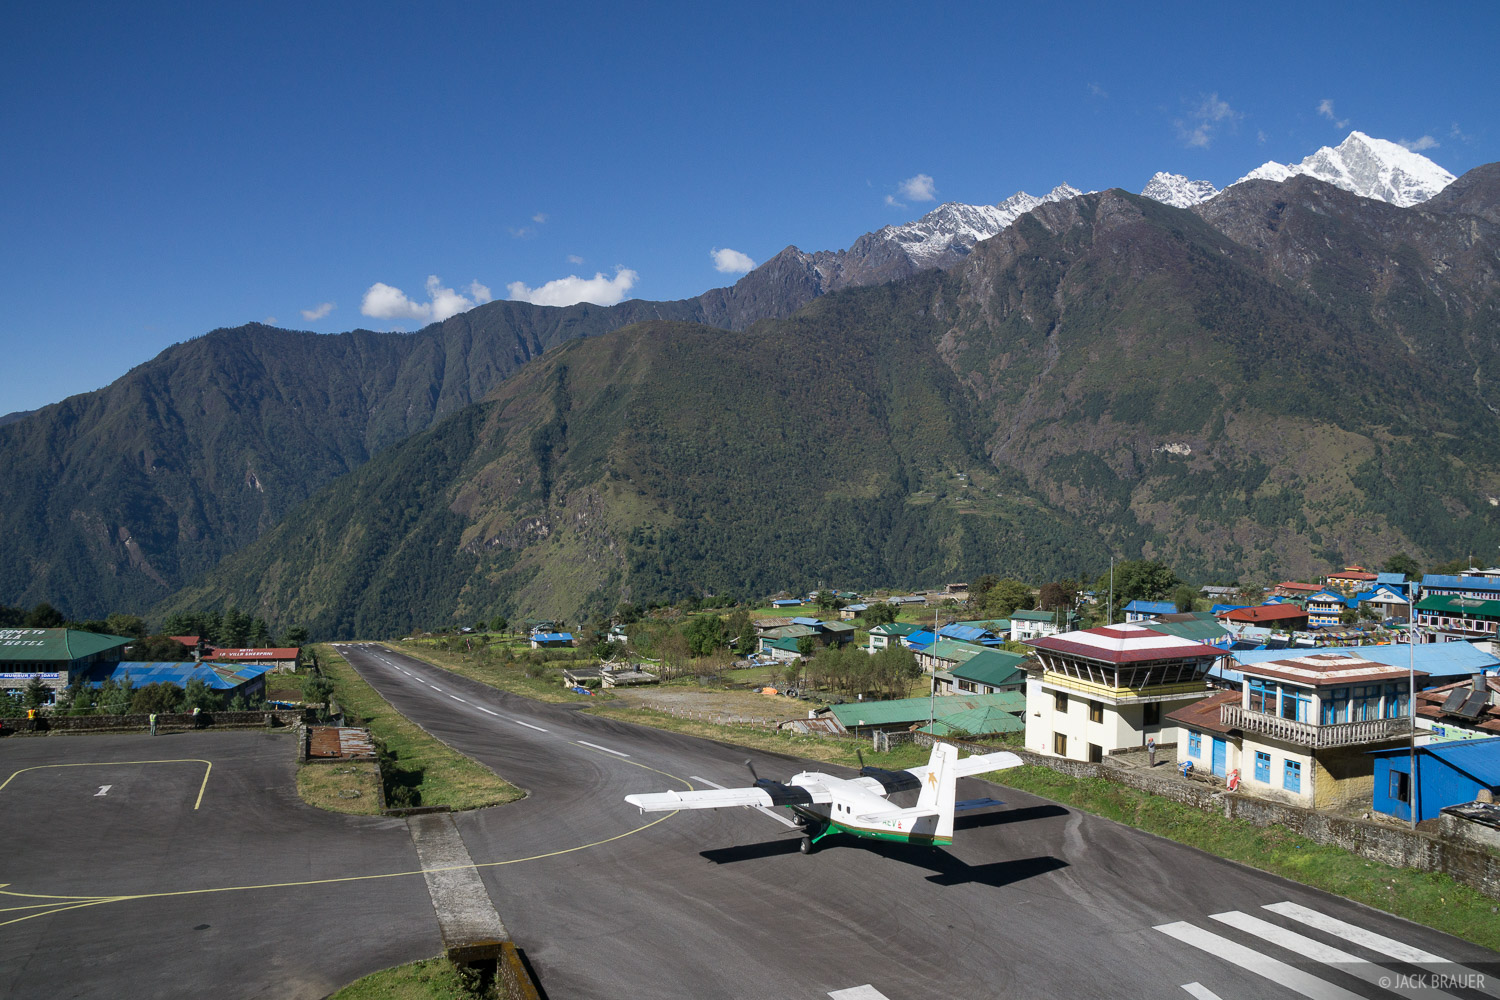 Himalaya,Khumbu,Lukla,Nepal, airport, photo